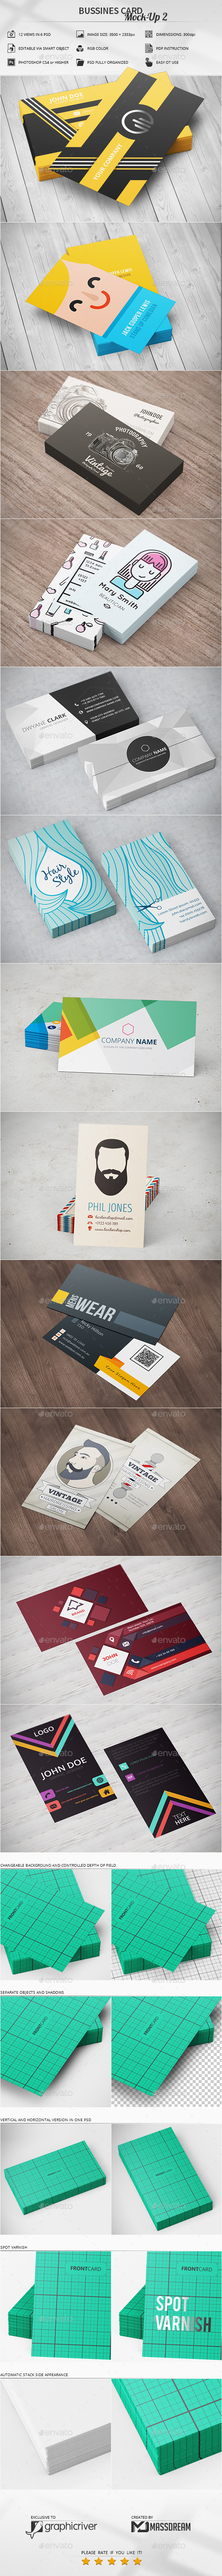 Bussines Card Mock-Up 2 - Business Cards Print